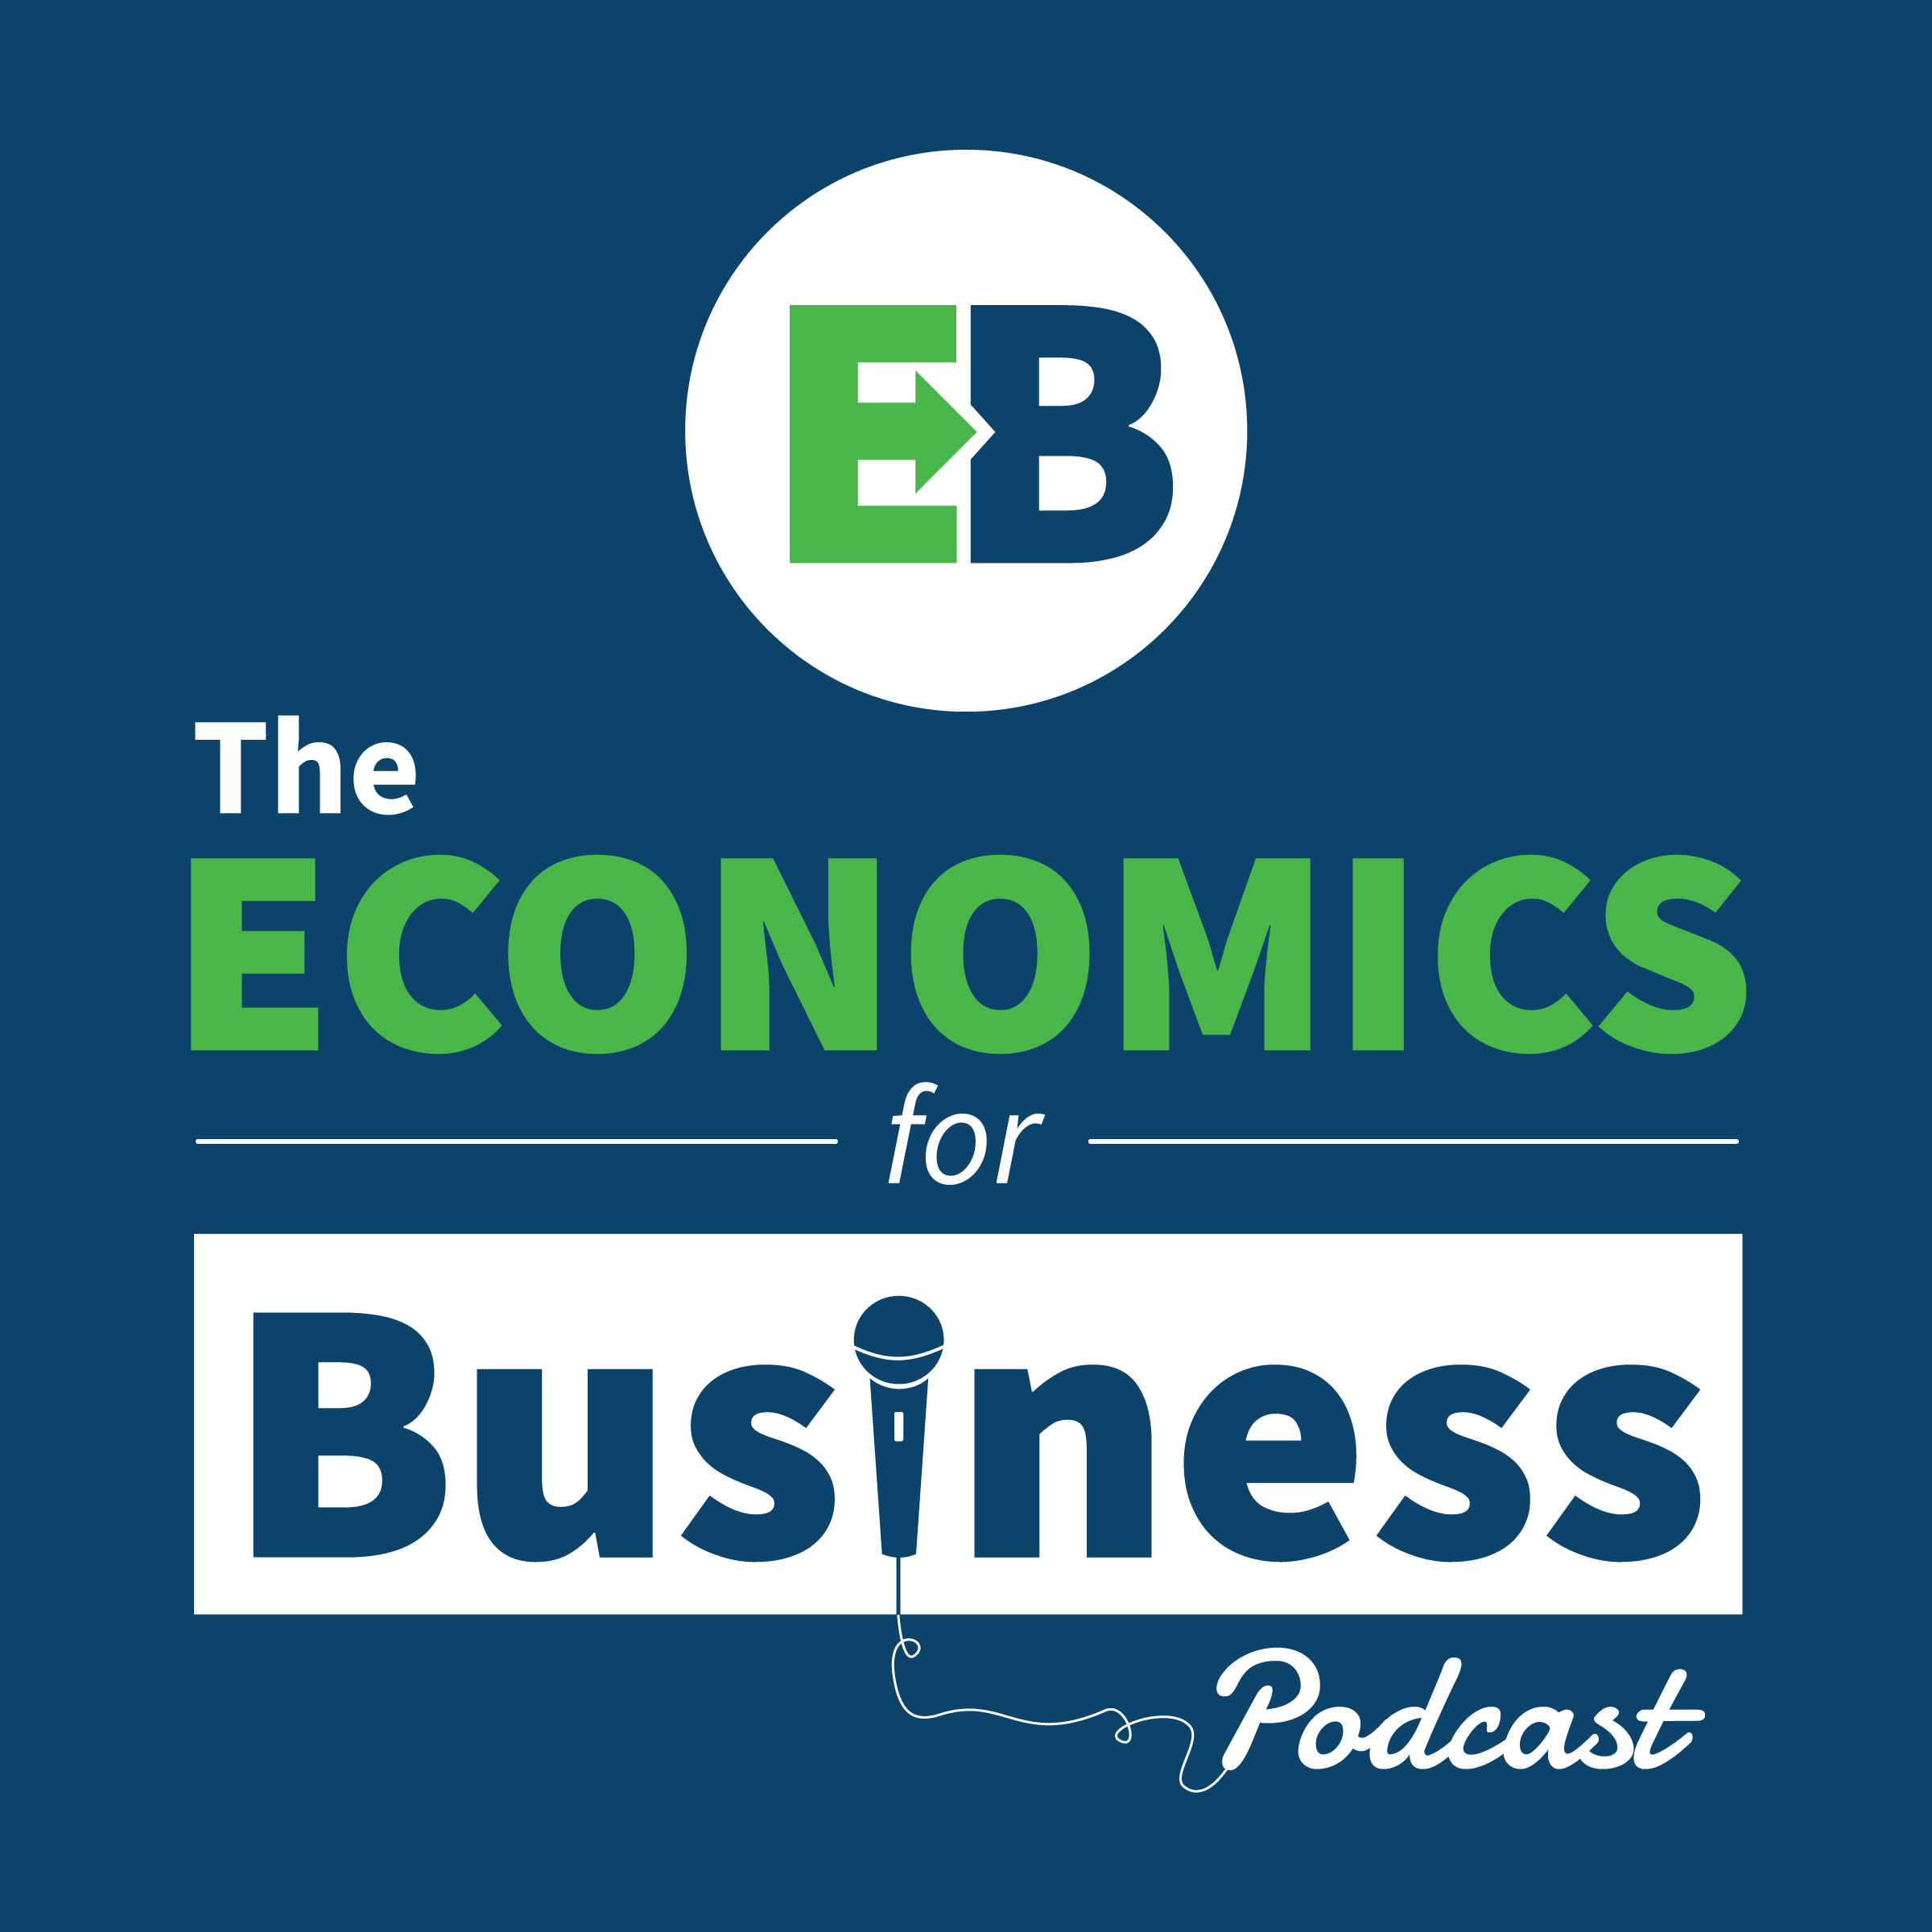 Economics for Business Podcast Logo